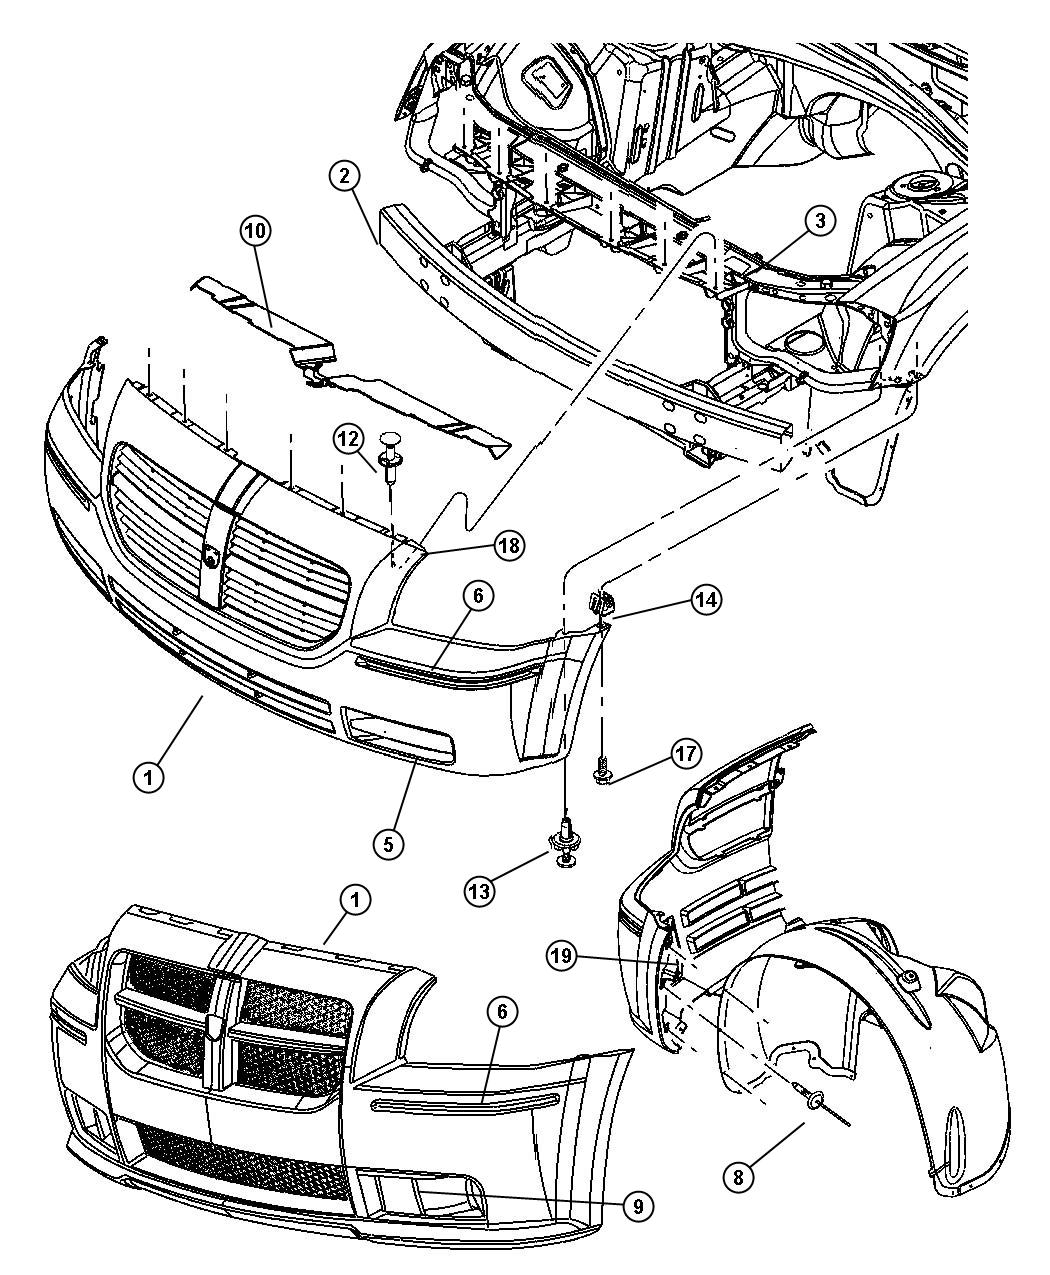 Dodge Caliber Front Bumper Diagram Dodge Free Engine